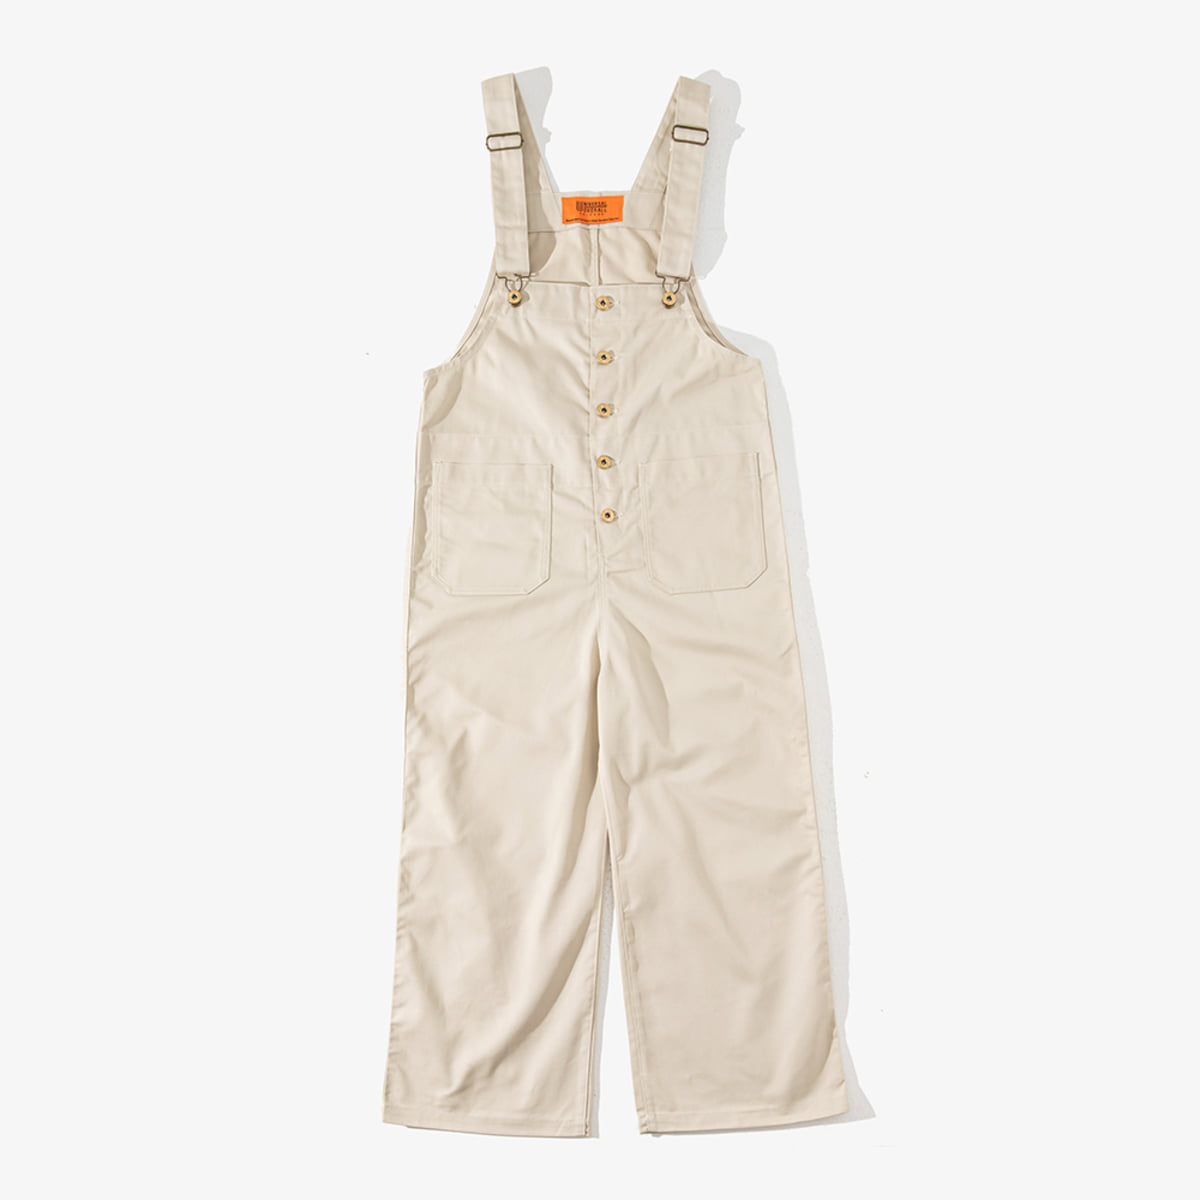 WOMENS BASIC OVERALL IVORY